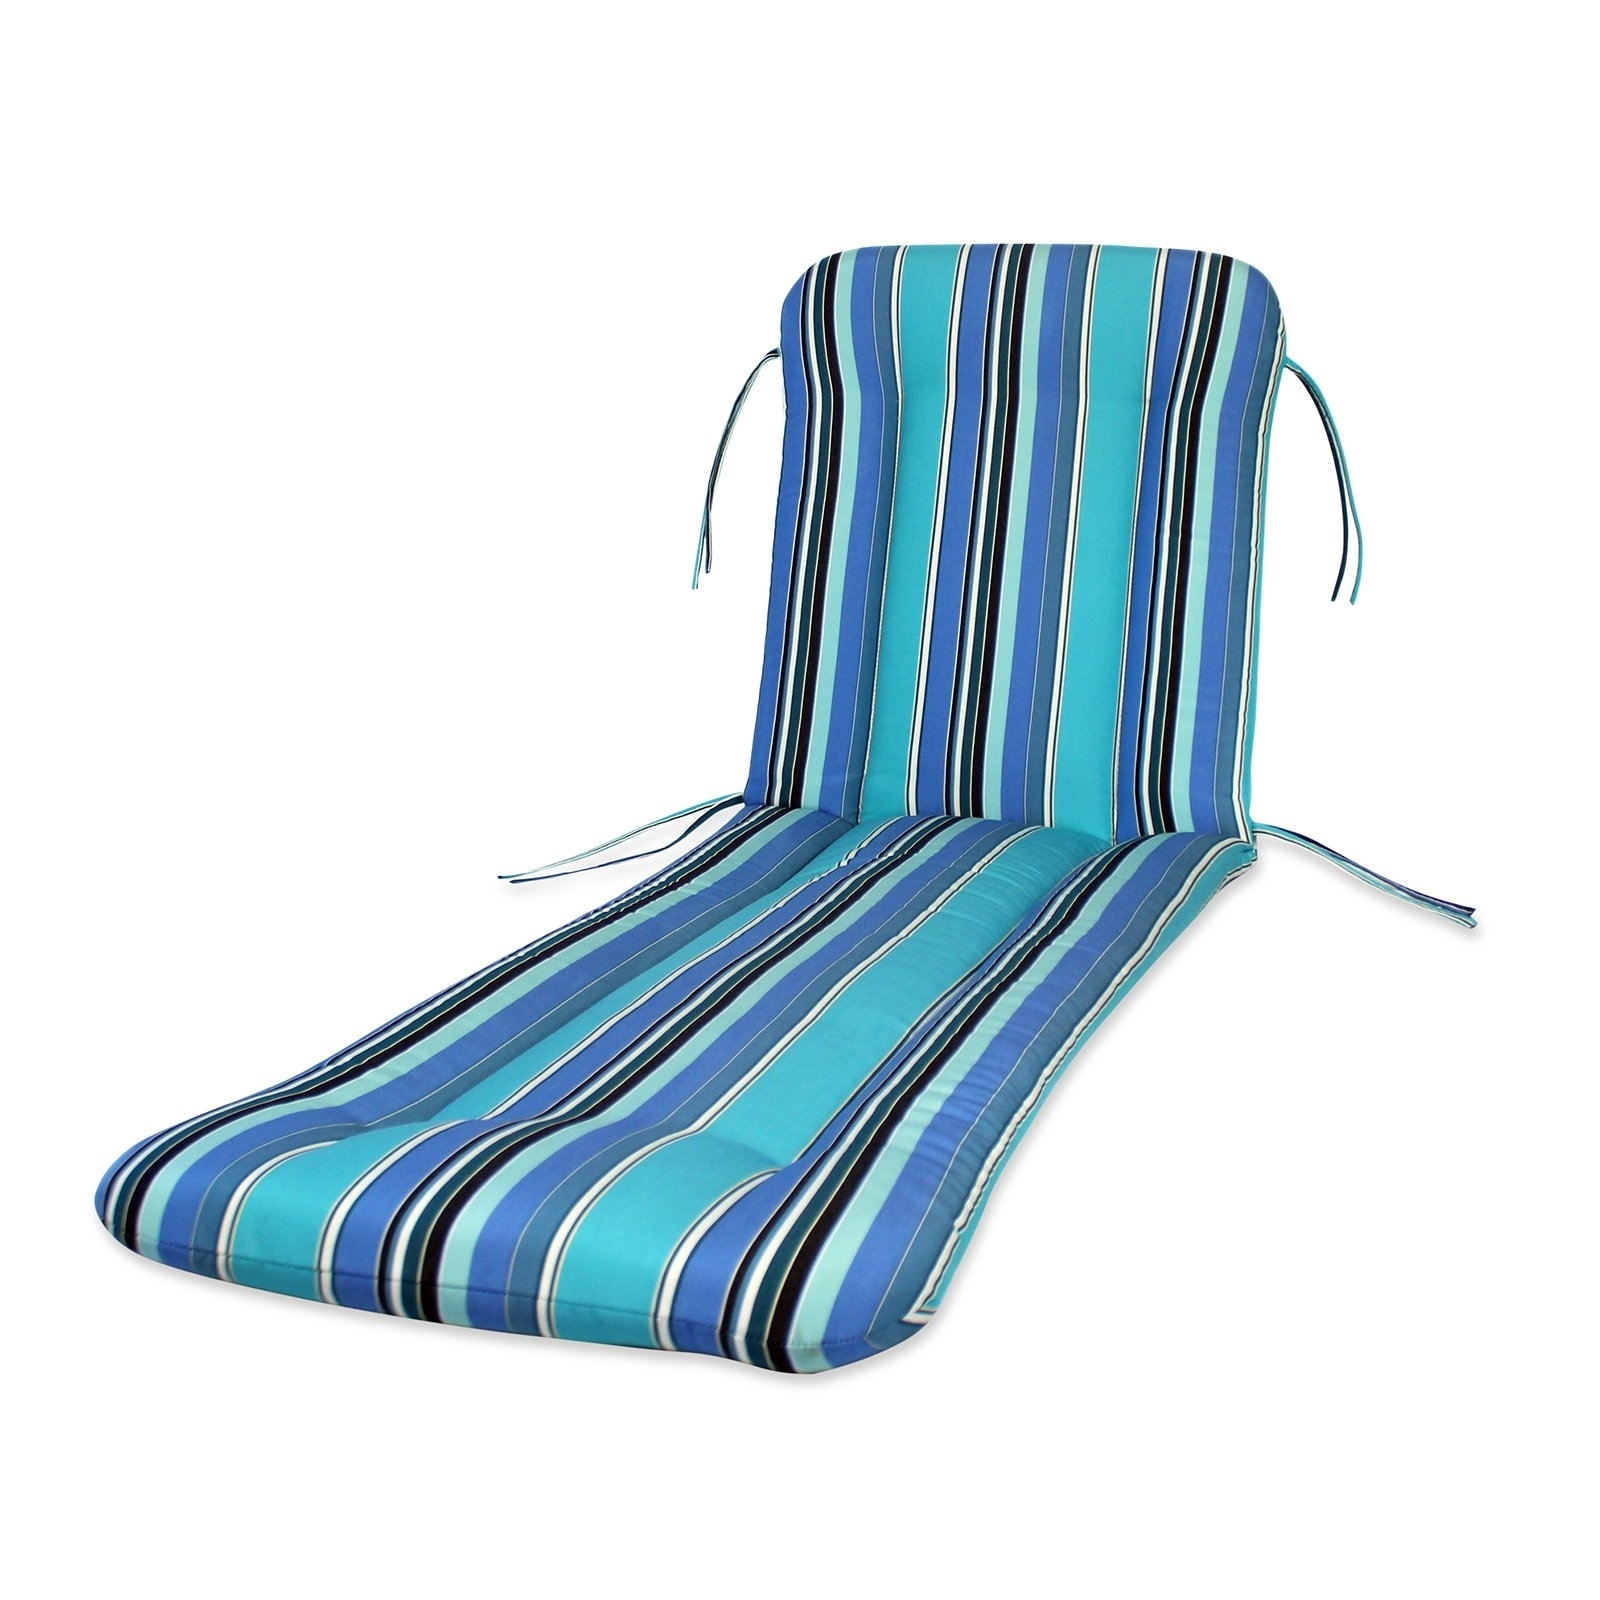 Walmart Chaise Lounge Cushions Within Latest Comfort Classics Sunbrella Chaise Lounge Cushion – Walmart (View 11 of 15)